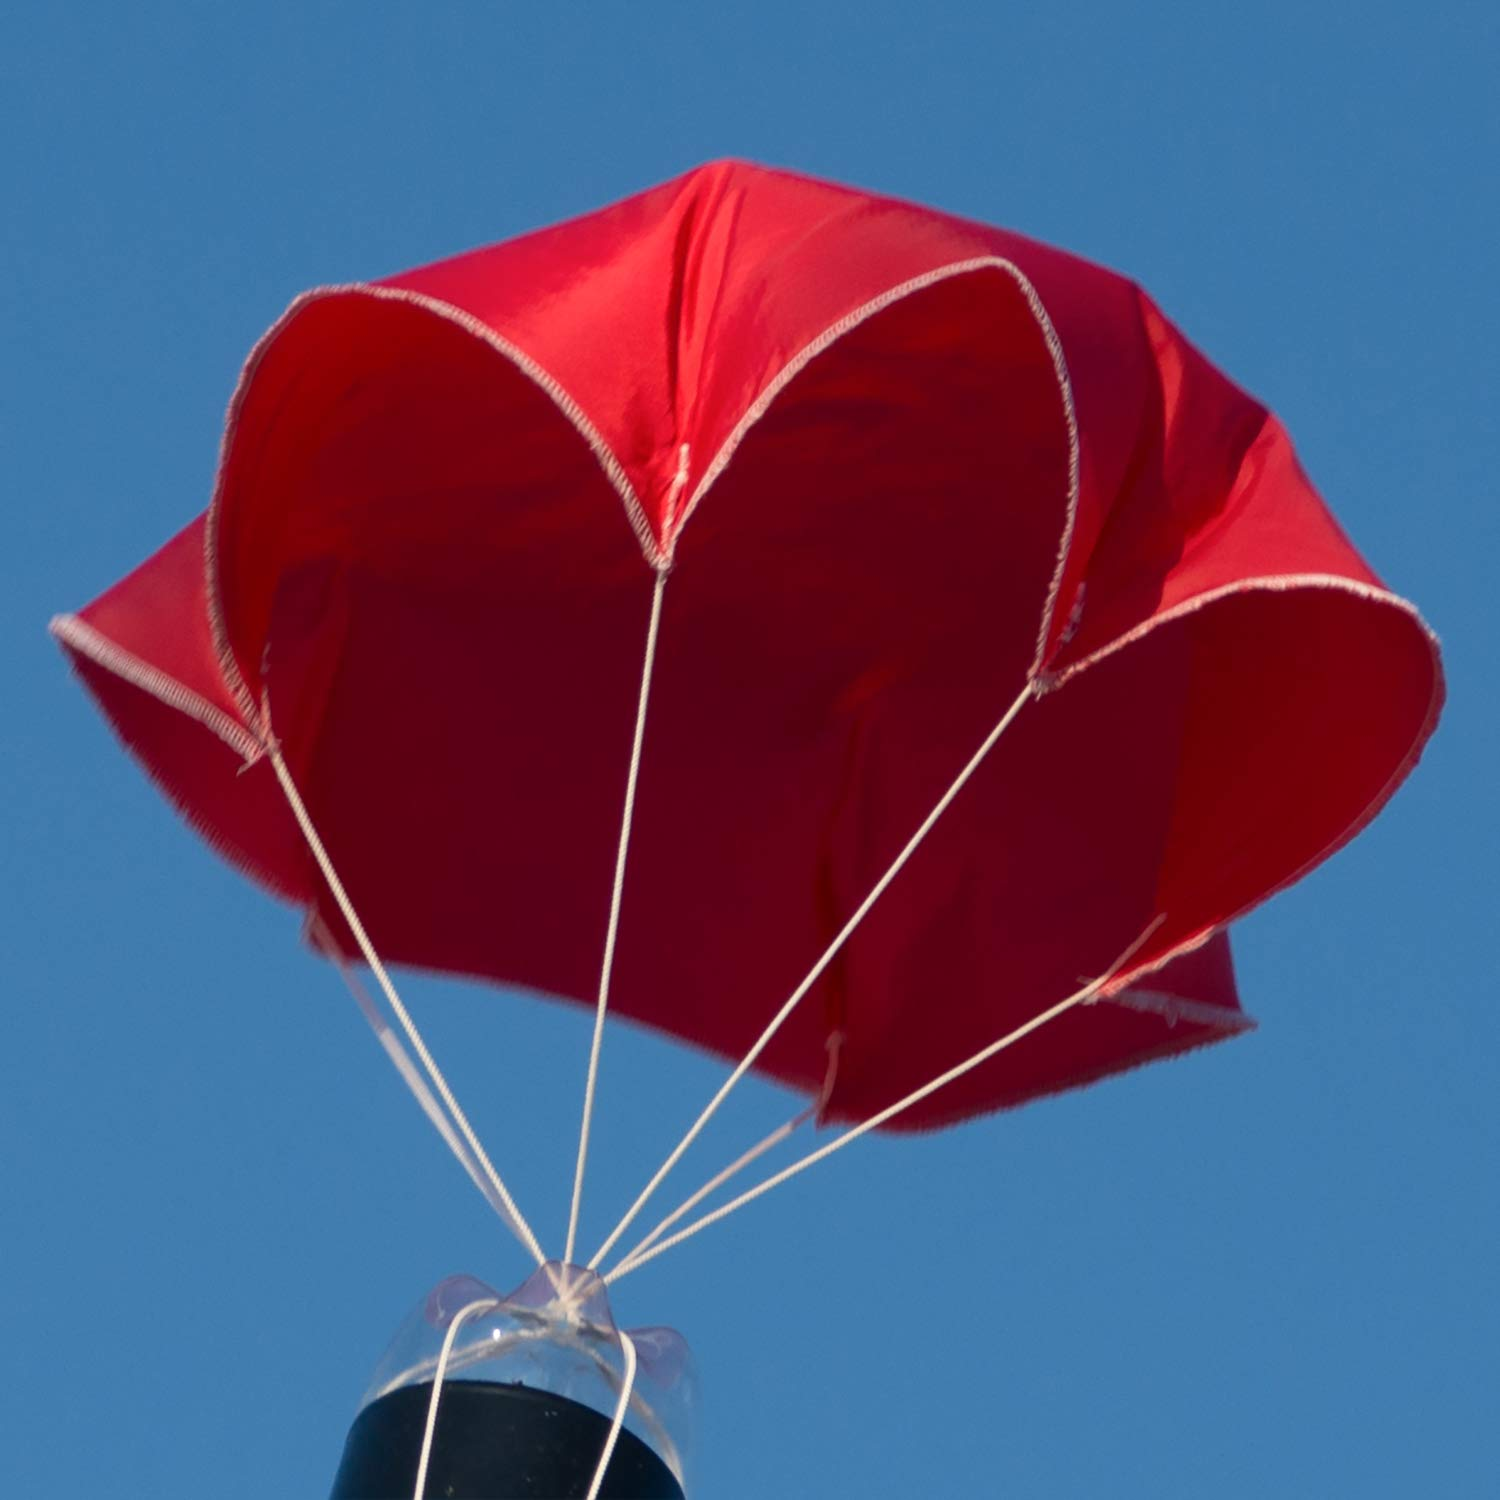 """Relationshipware StratoChute 24"""" Red Rip-Stop Nylon Parachute for Water or Model Rocket"""